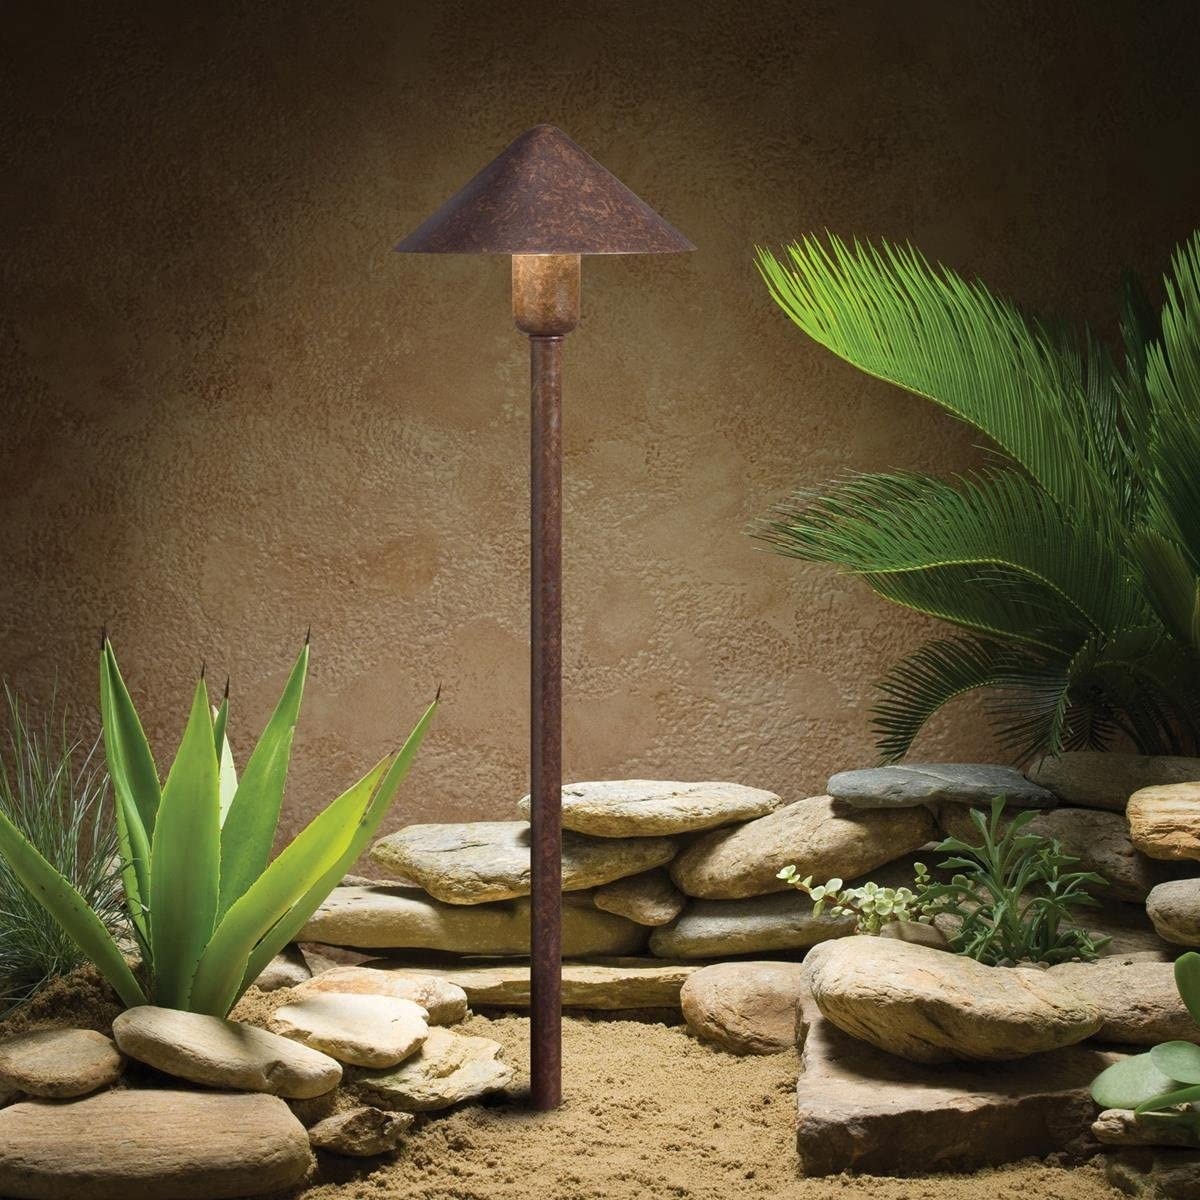 Kichler Lighting 15439TZT Low Voltage One Light Path Lamp, Textured Tannery Bronze Finish